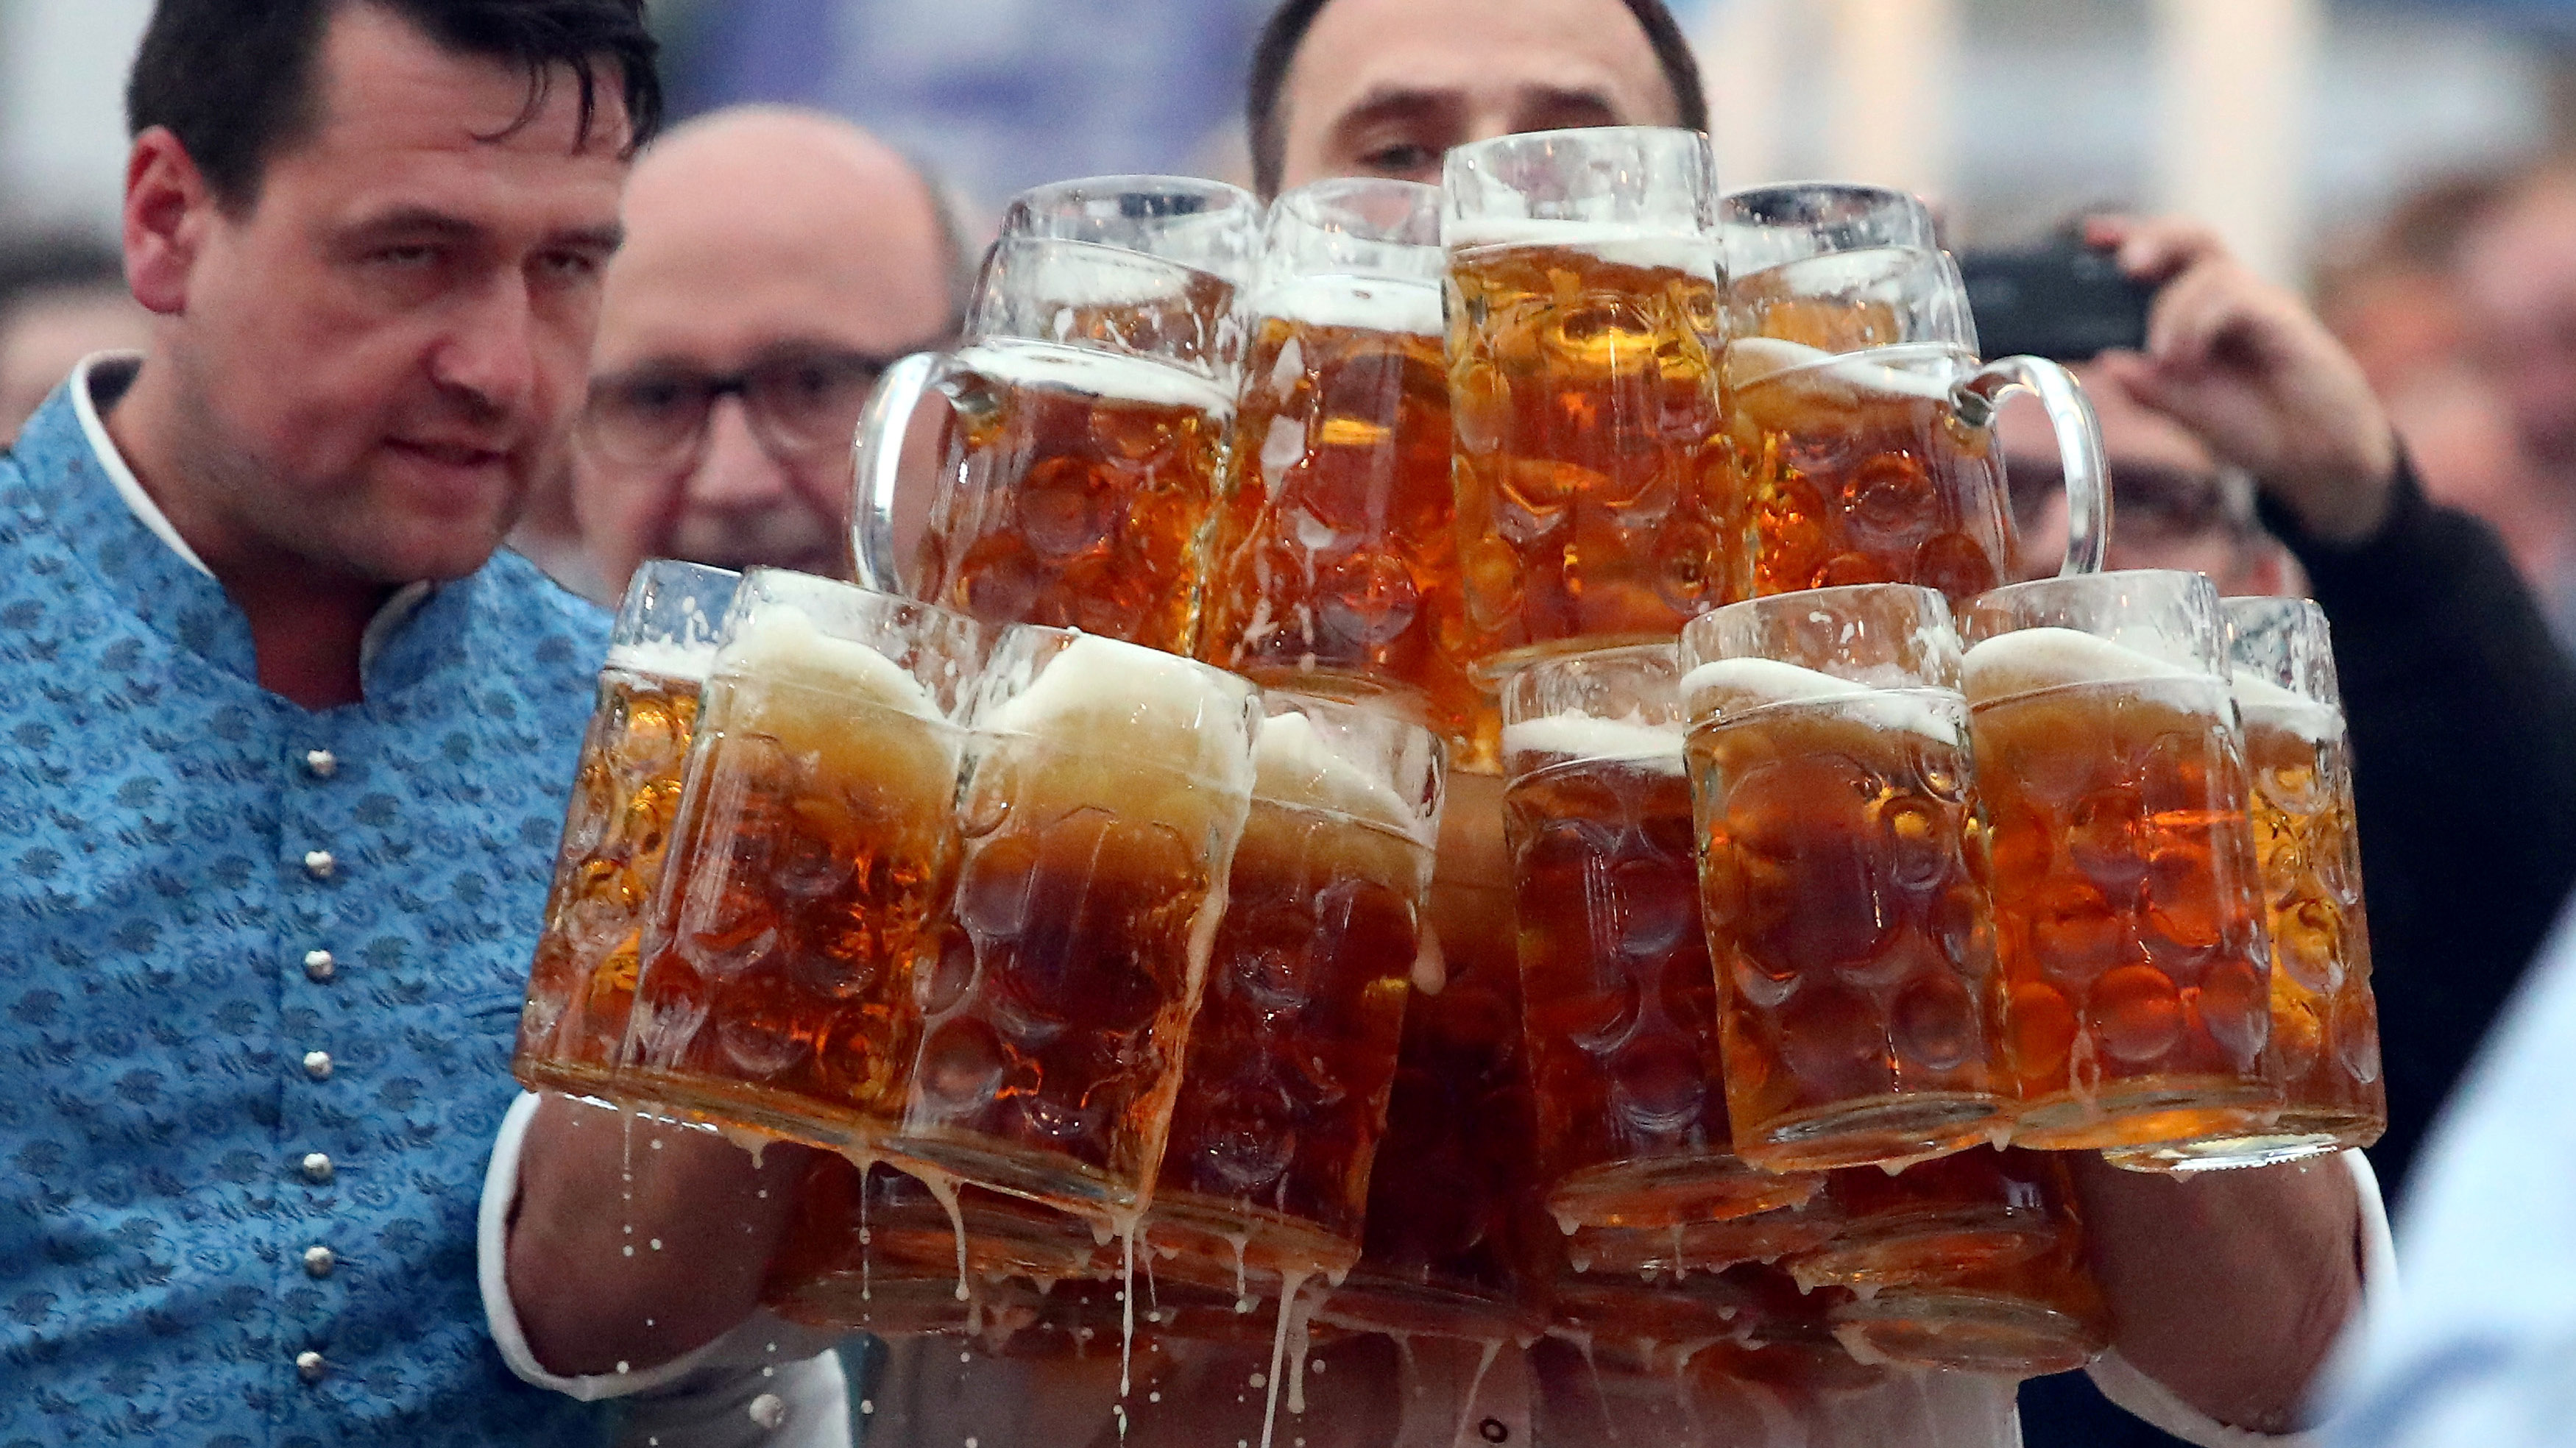 German Oliver Struempfel competes to set a new world record in carrying one liter beer mugs over a distance of 40 m (131 ft 3 in) in Abensberg, Germany September 3, 2017. Struempfel carried 29 mugs over 40 meters to set a new world record. REUTERS/Michael Dalder     TPX IMAGES OF THE DAY - RC18CAE8AC60